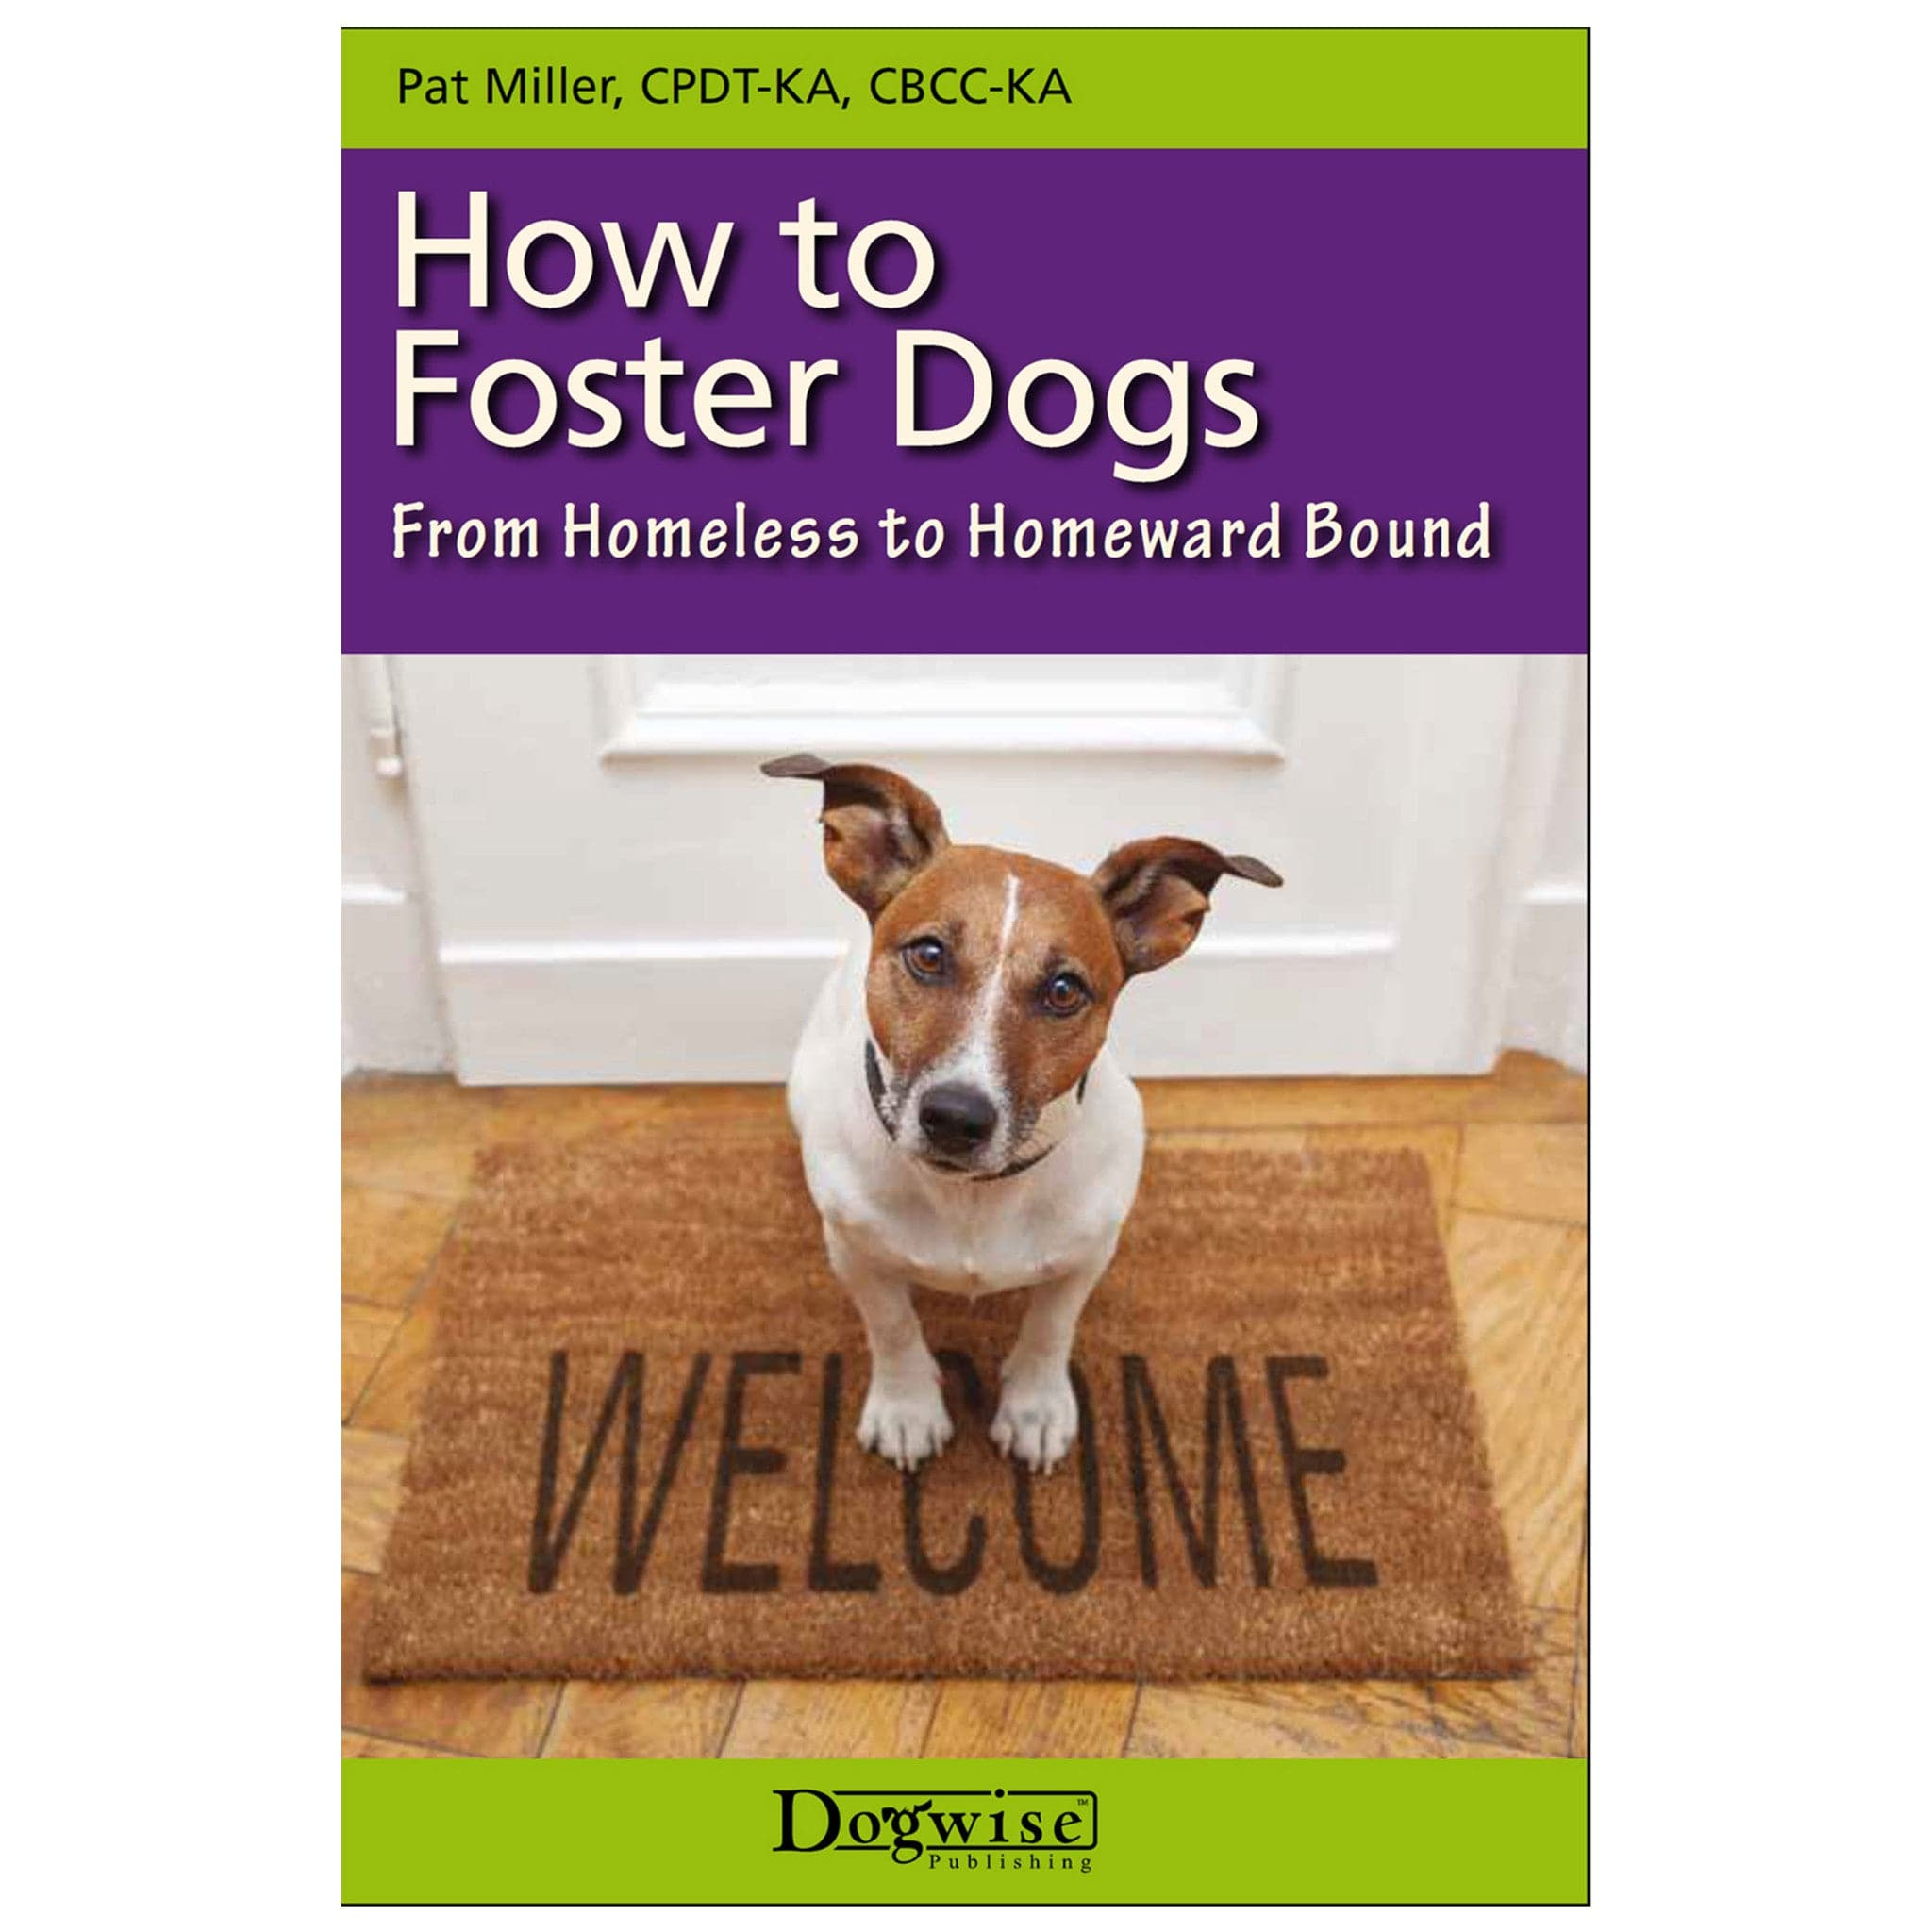 How to Foster Dogs: From Homeless to Homeward Bound (Kindle Version)